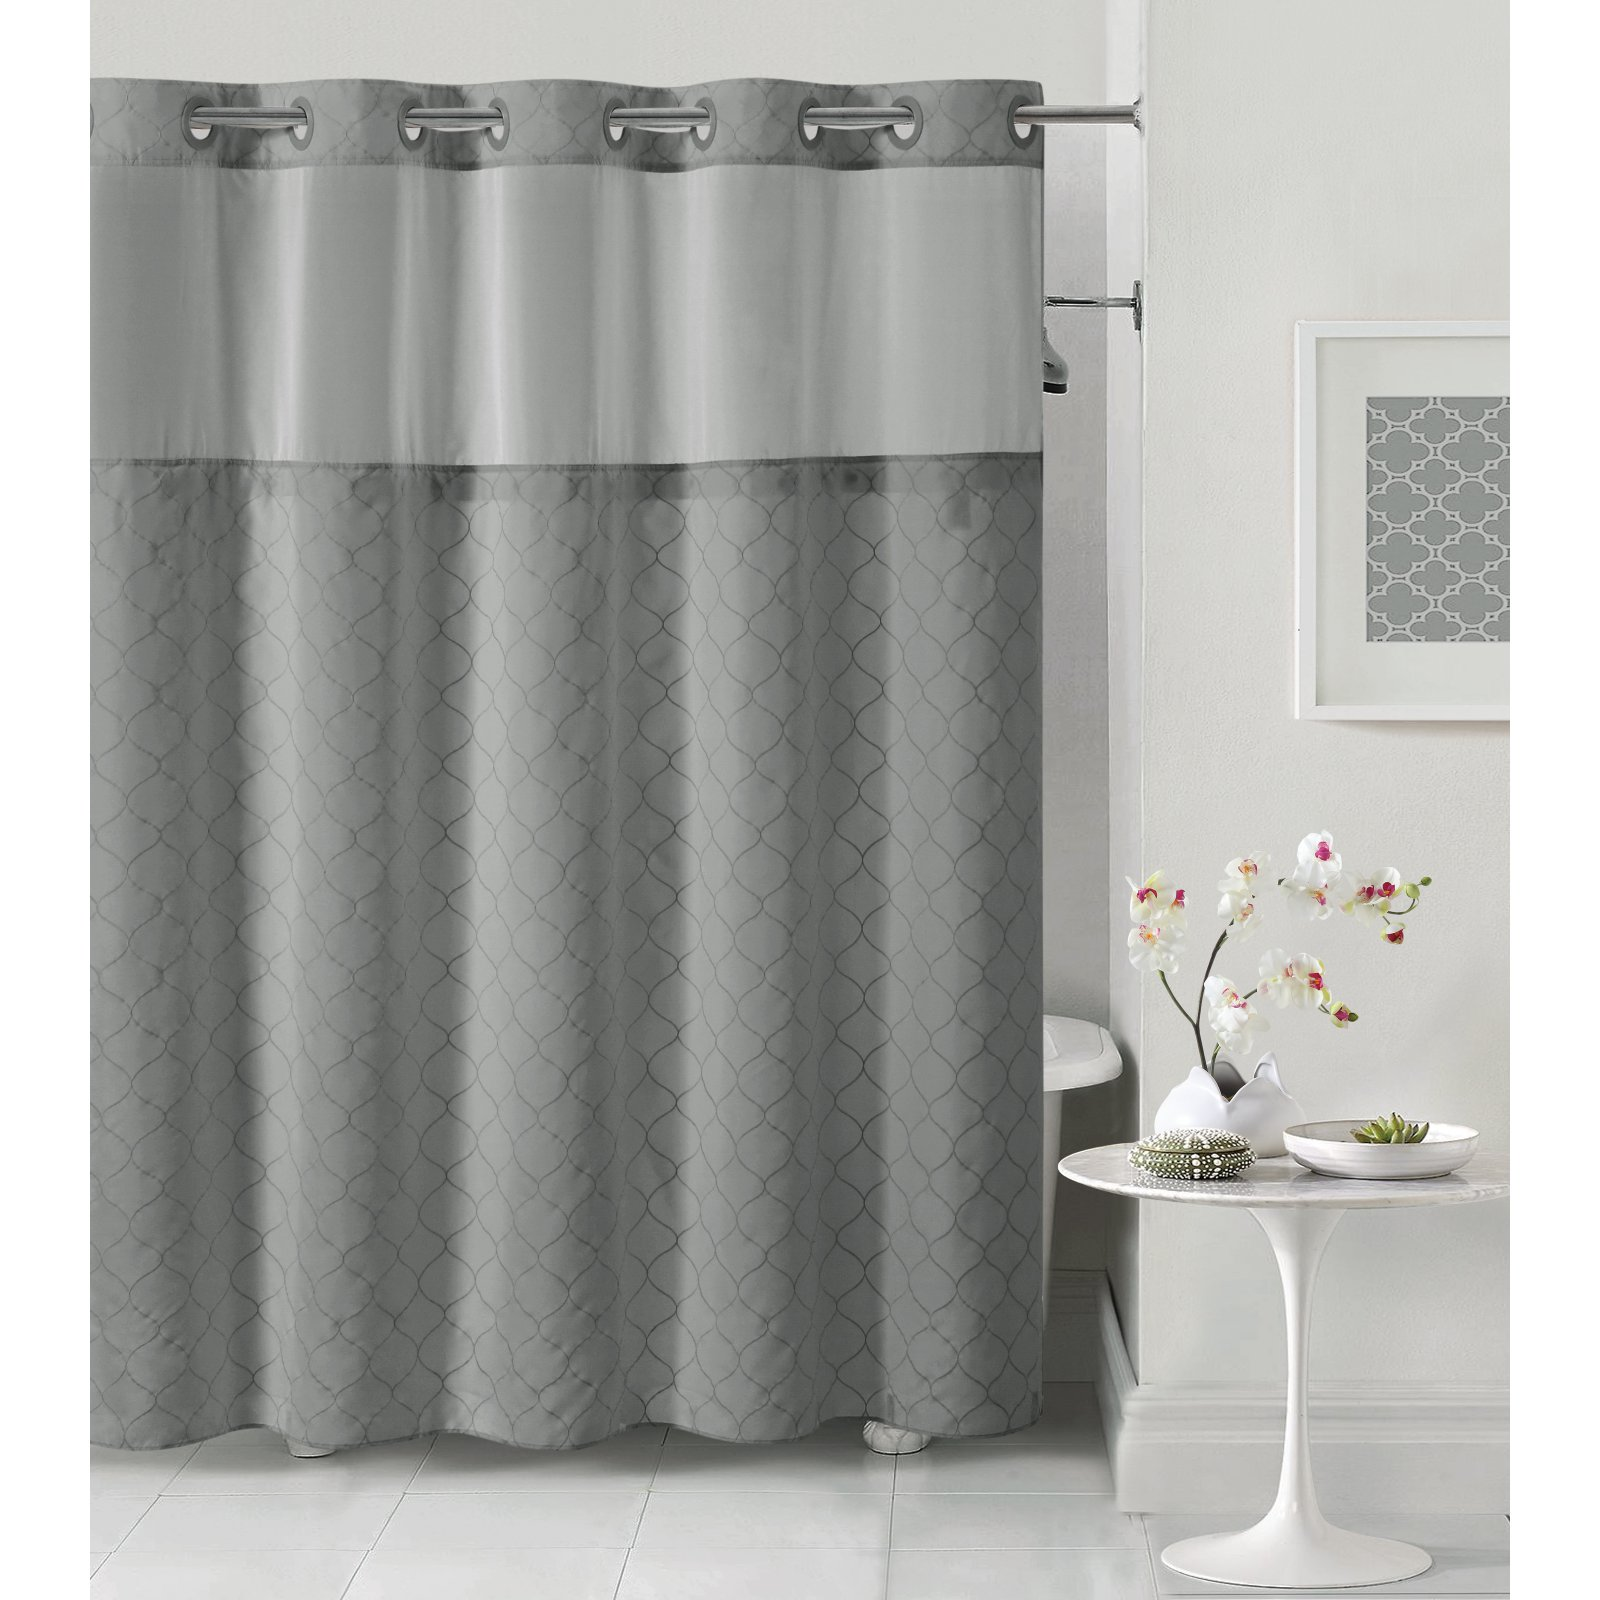 Hookless Dark Gray Mosaic Polyester Shower Curtain by Hookless